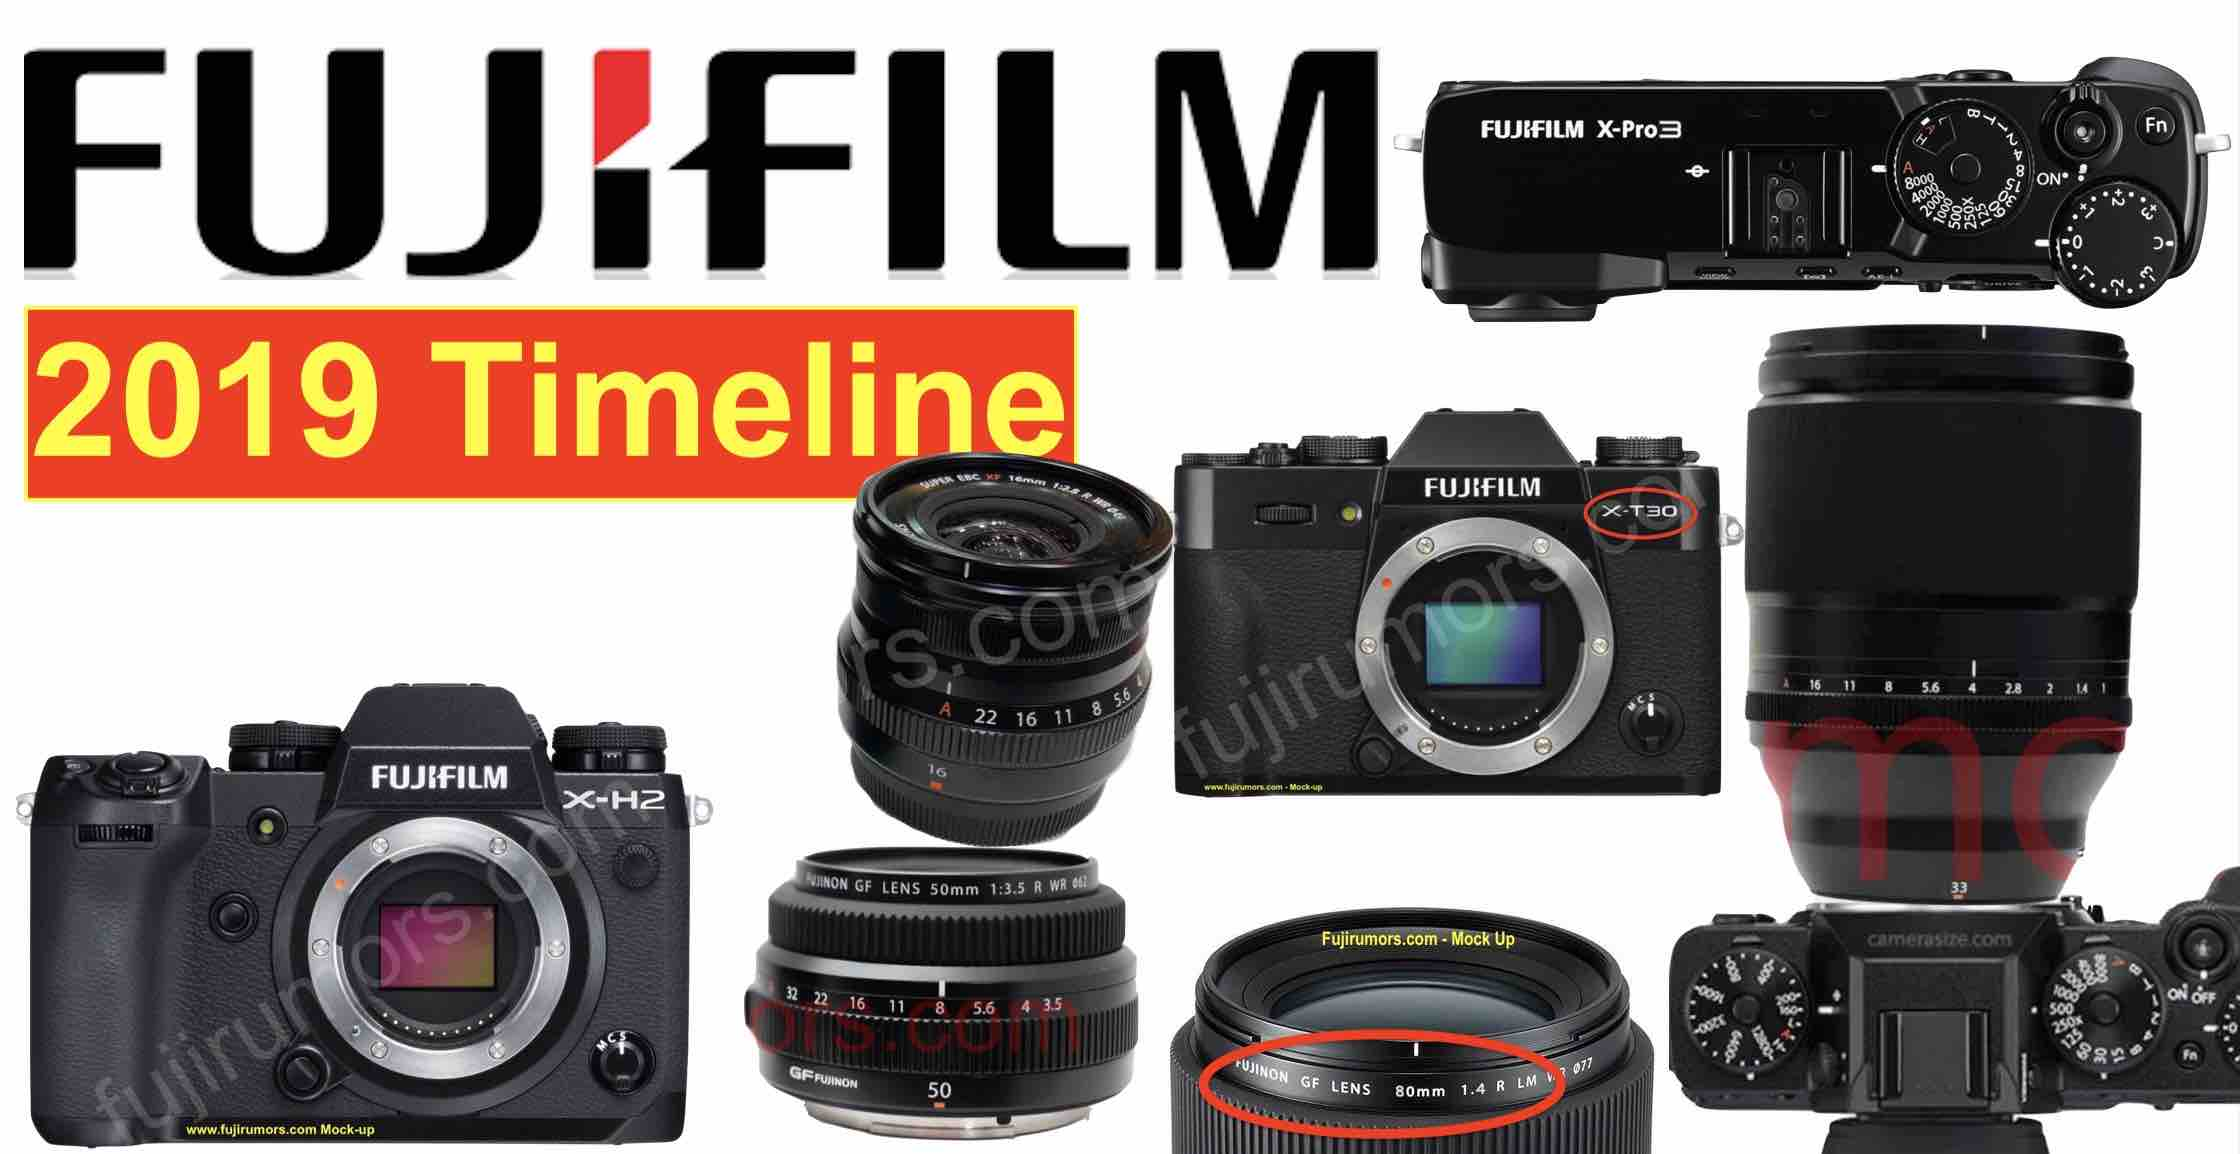 Fujifilm 2019 Camera and Lens Release Timeline (and a bit of 2020